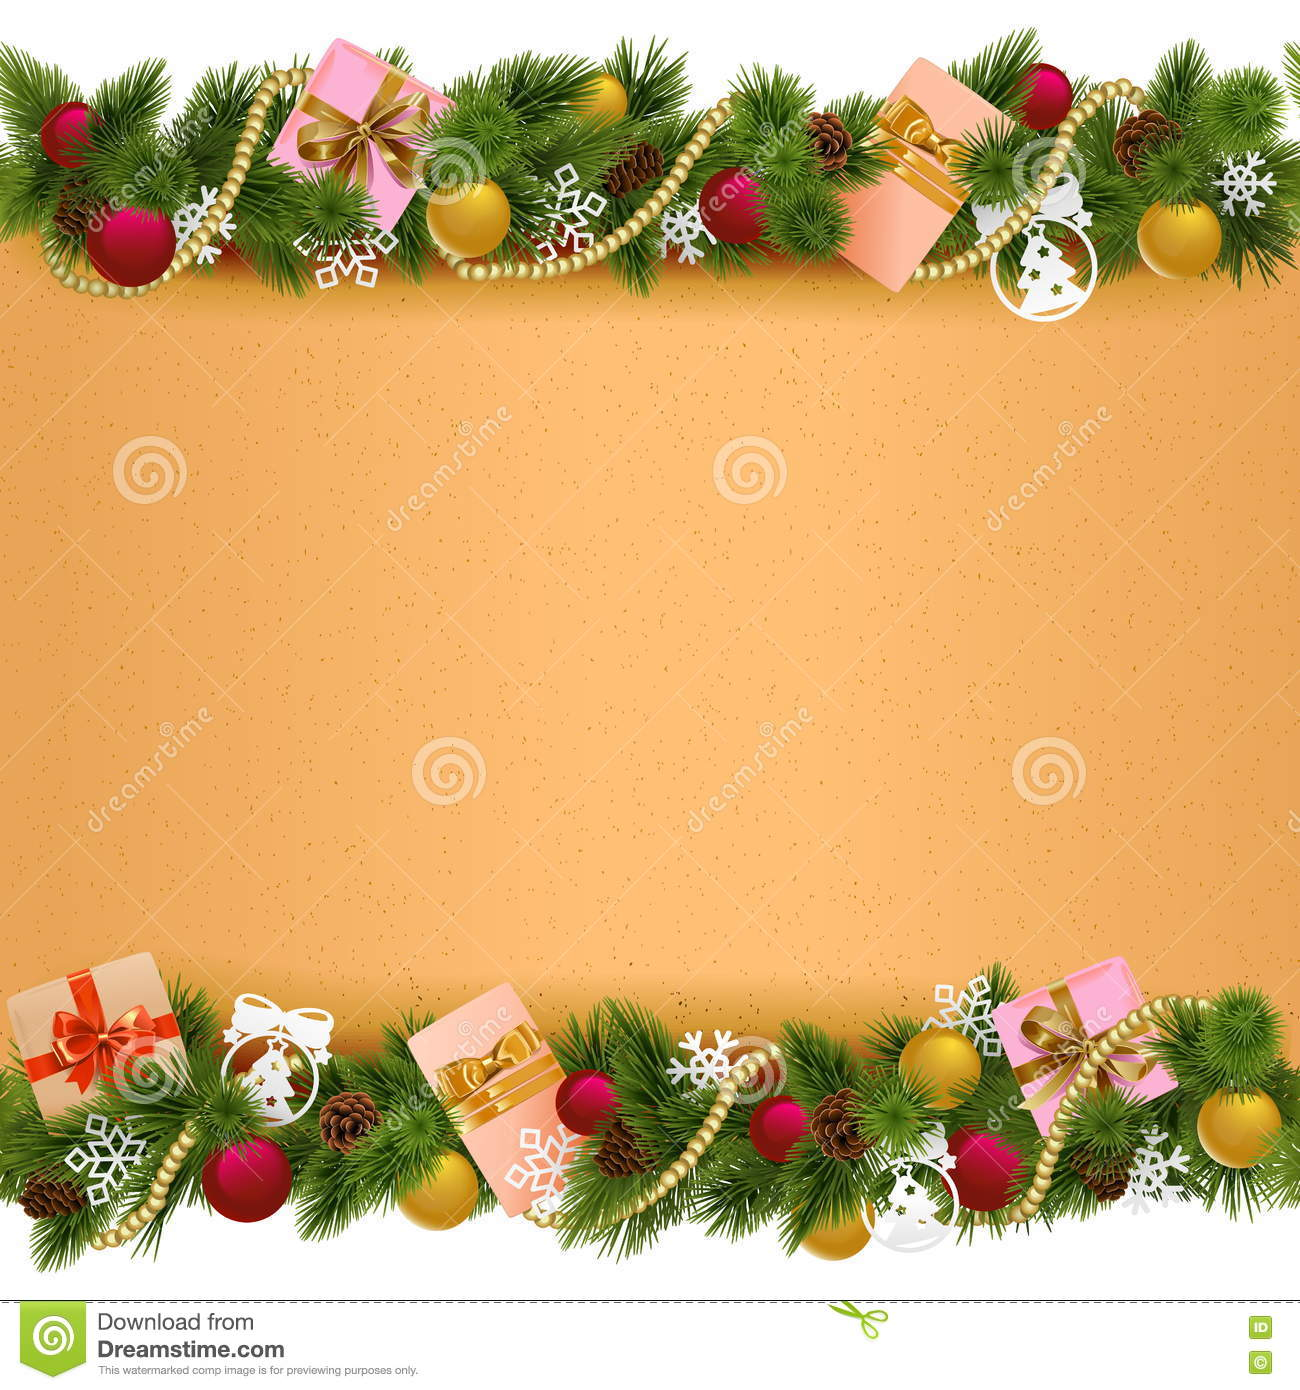 download vector christmas border with paper scroll stock vector illustration of frame december